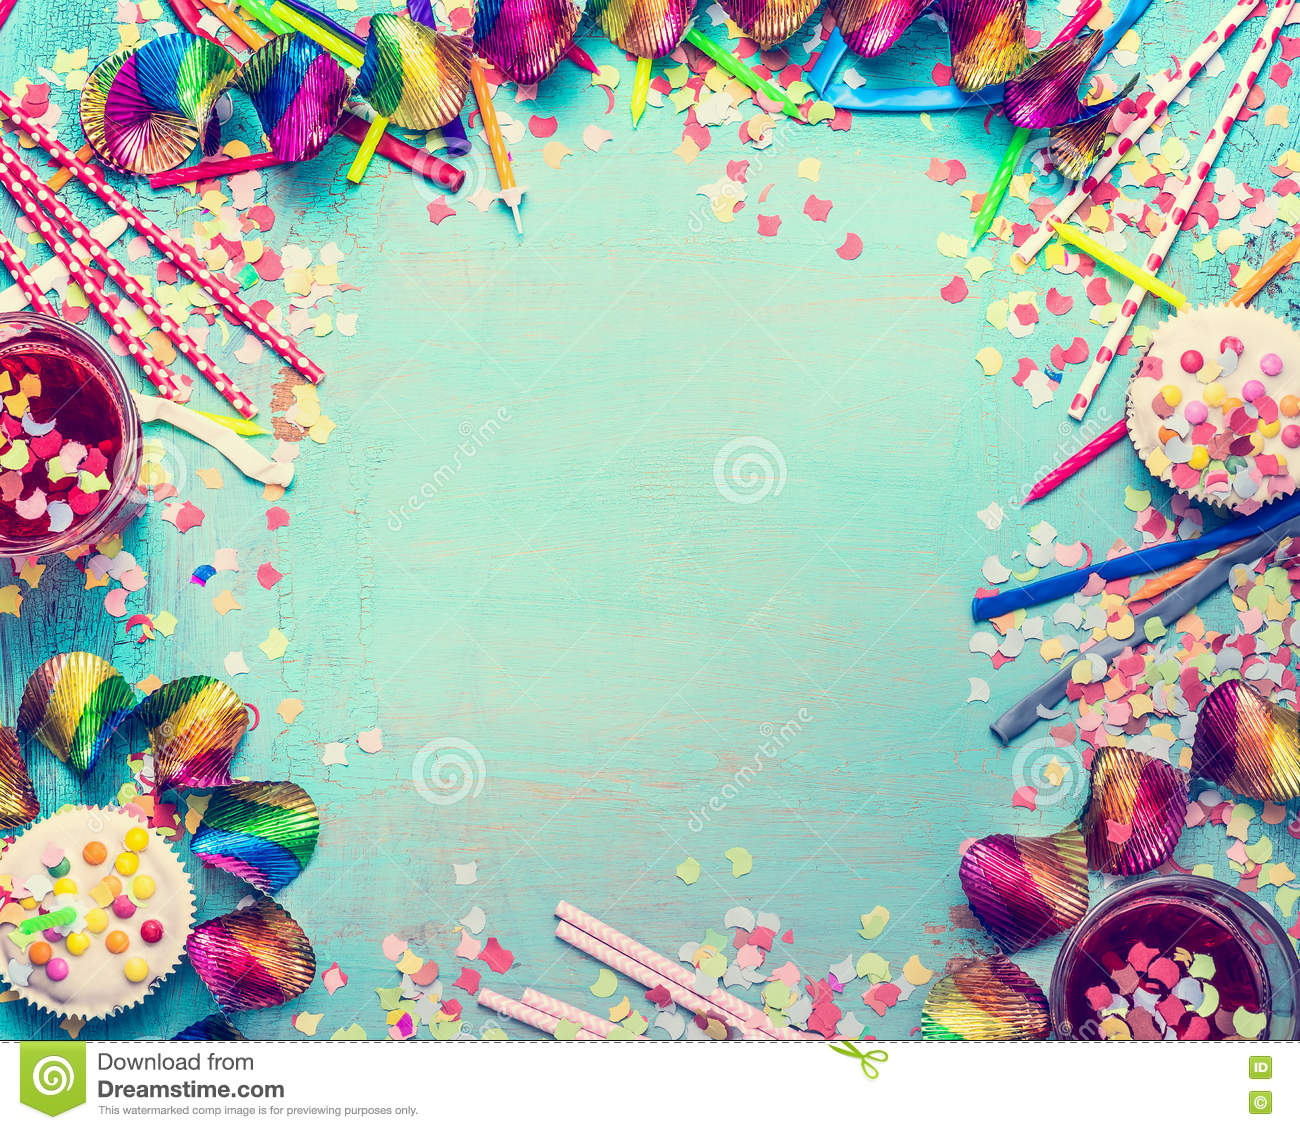 cute birthday photo frames ; happy-birthday-frame-party-tools-cake-drinks-confetti-turquoise-shabby-chic-background-top-view-place-text-70997681